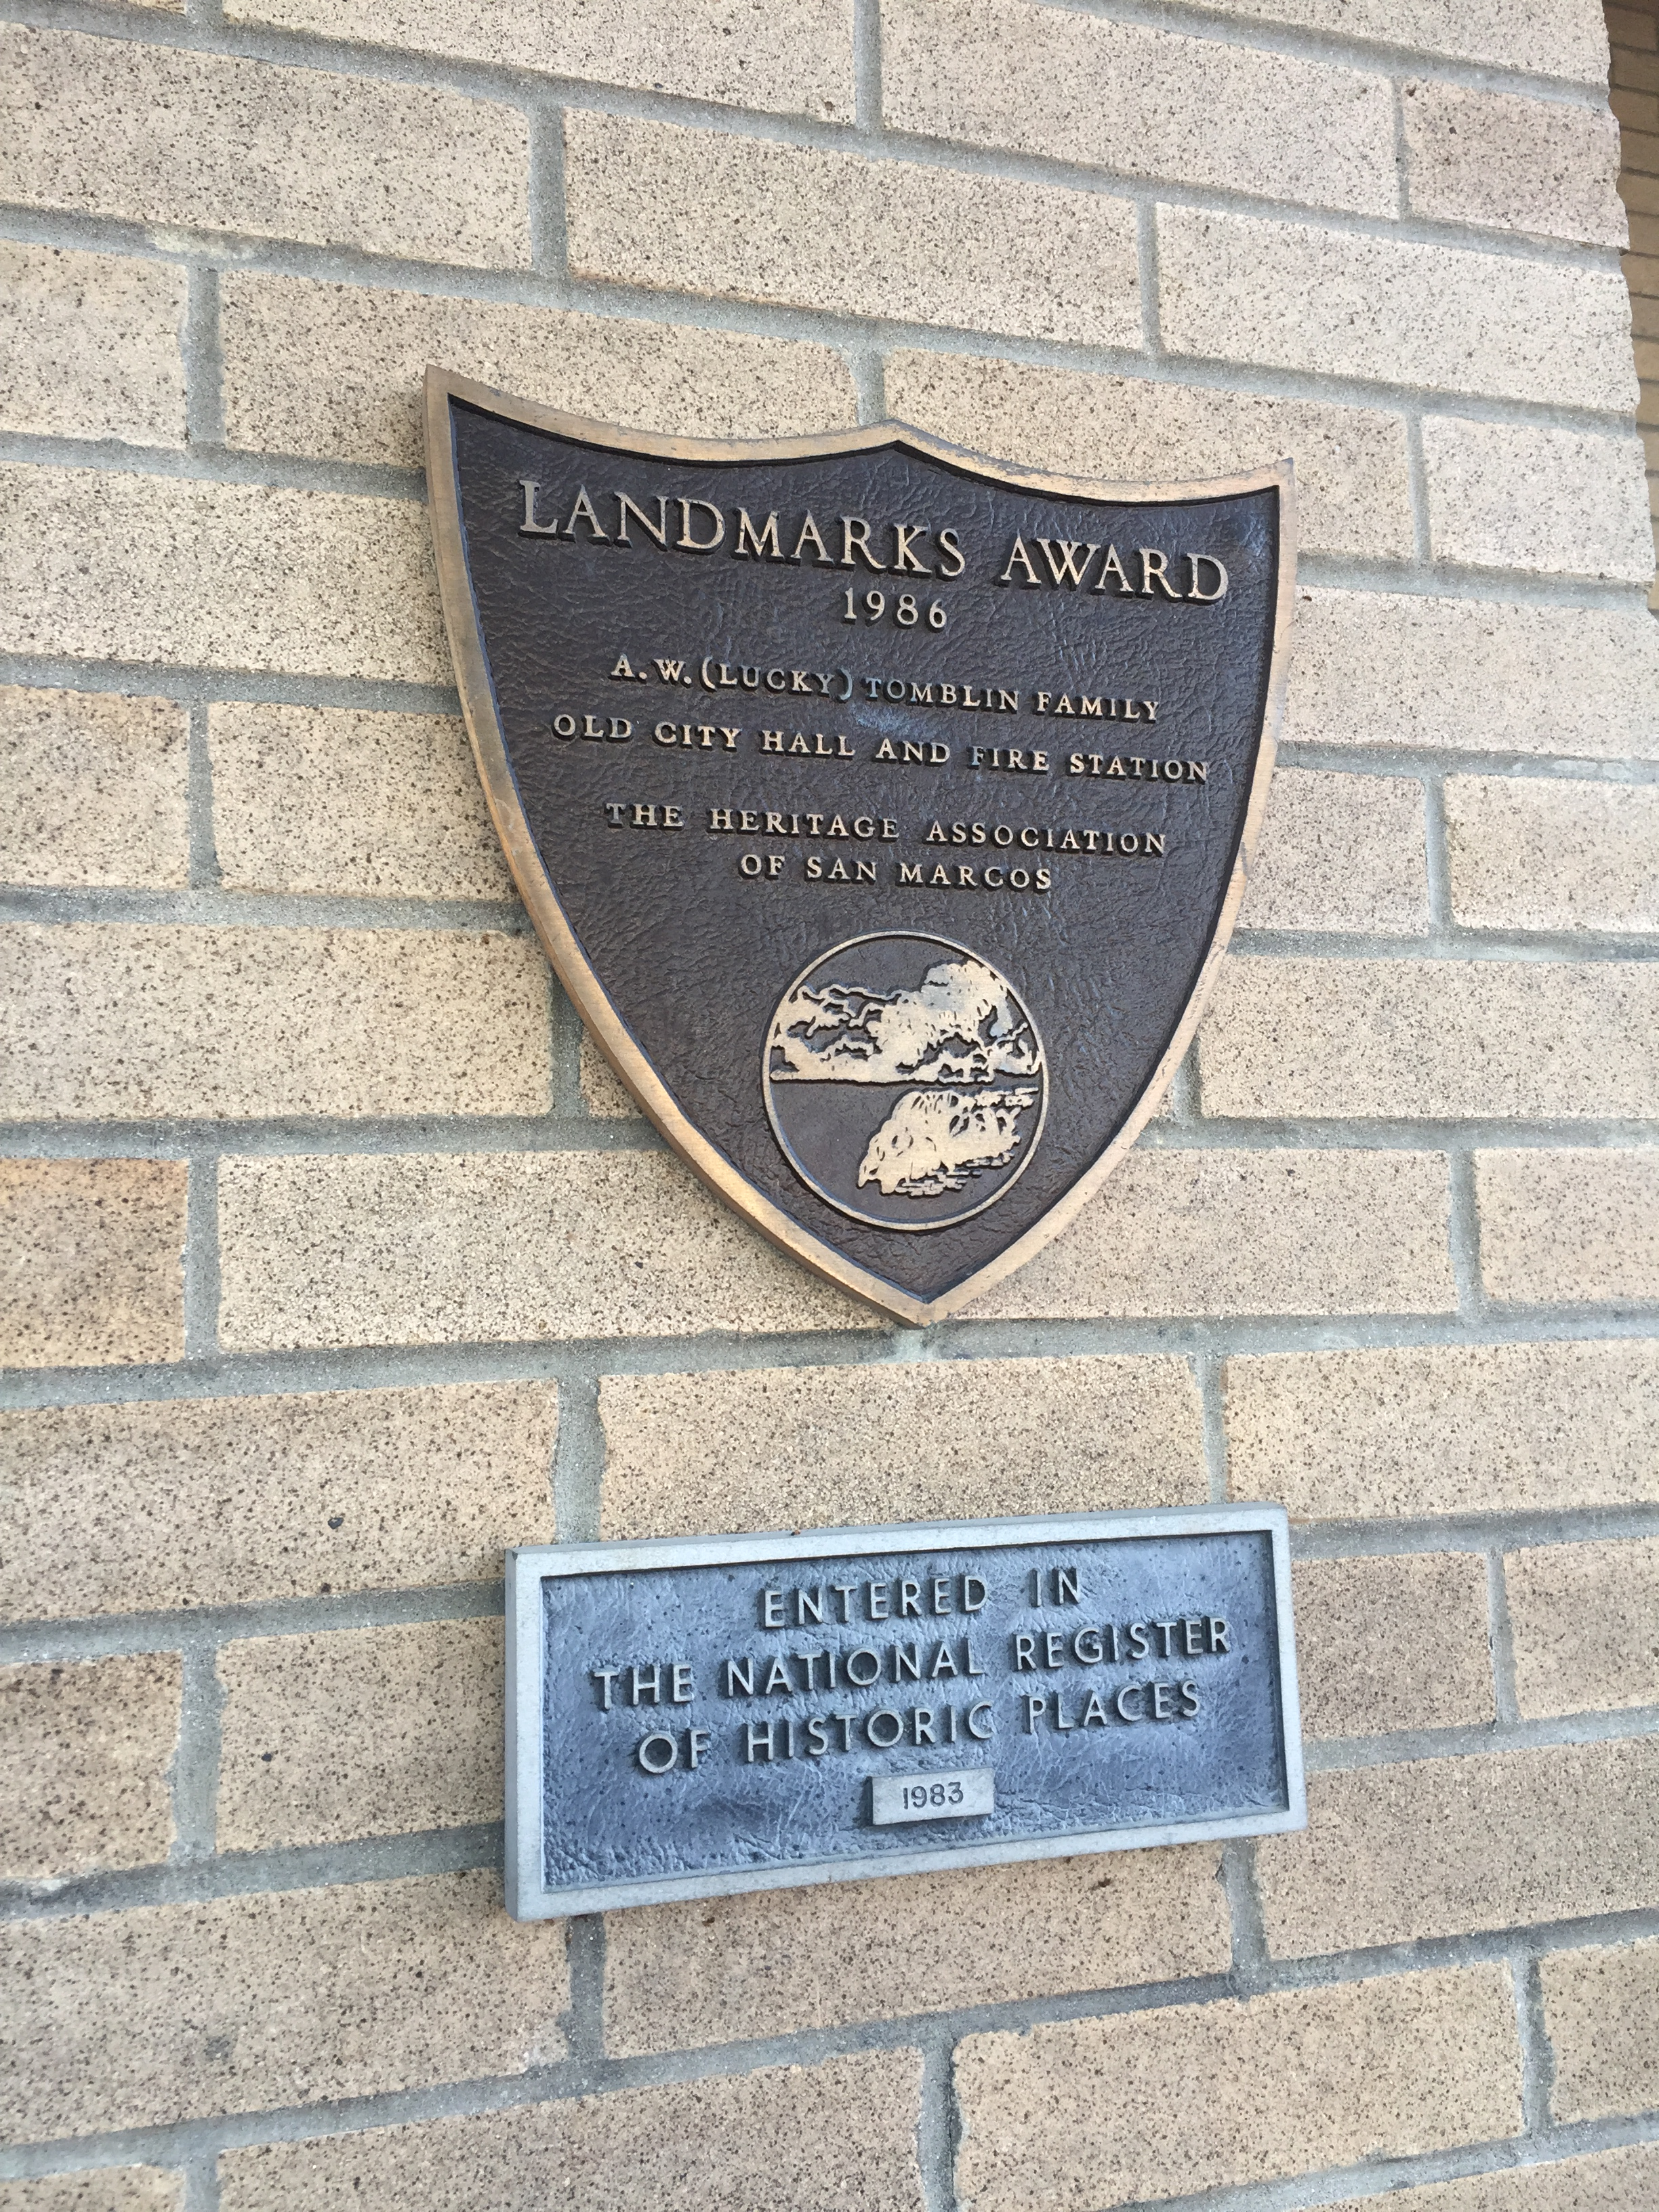 """Two plaques on a brick wall. The top plaque reads """"Landmarks Award, 1986. A.W. (Lucky) Tomblin Family. Old City Hall and Fire Station. The heritage association of San Marcos."""" The bottom plaque reads """"Entered in the National Register of Historic Places, 1983."""""""